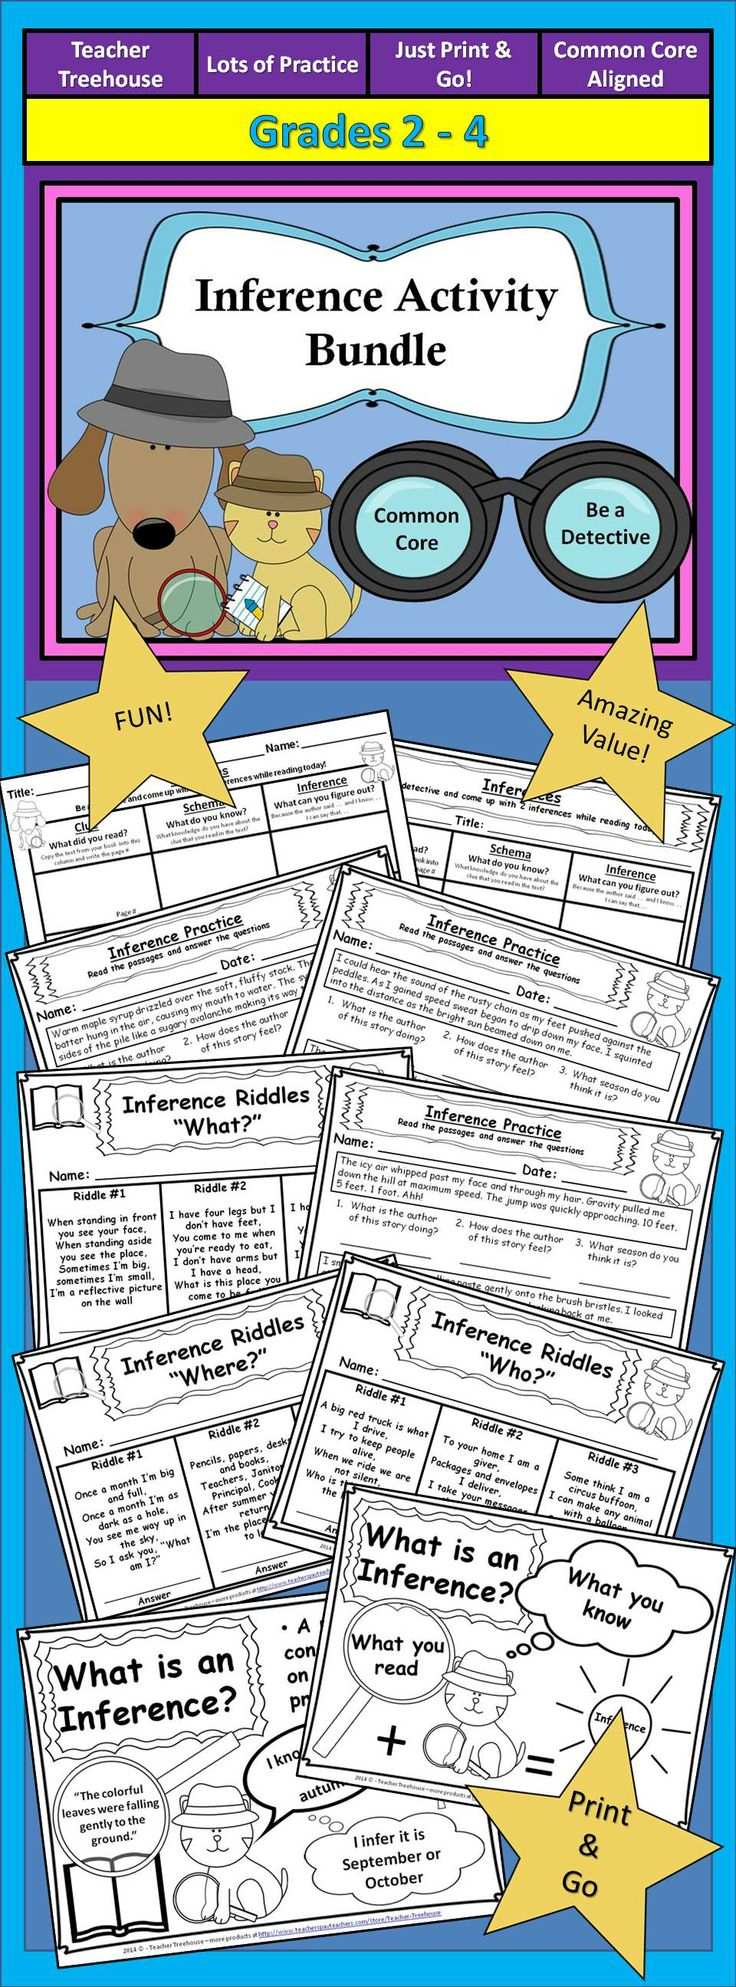 Free Worksheet Inferences Worksheet 4 17 best ideas about inference activities on pinterest activity bundle posters riddles worksheets graphic organizers